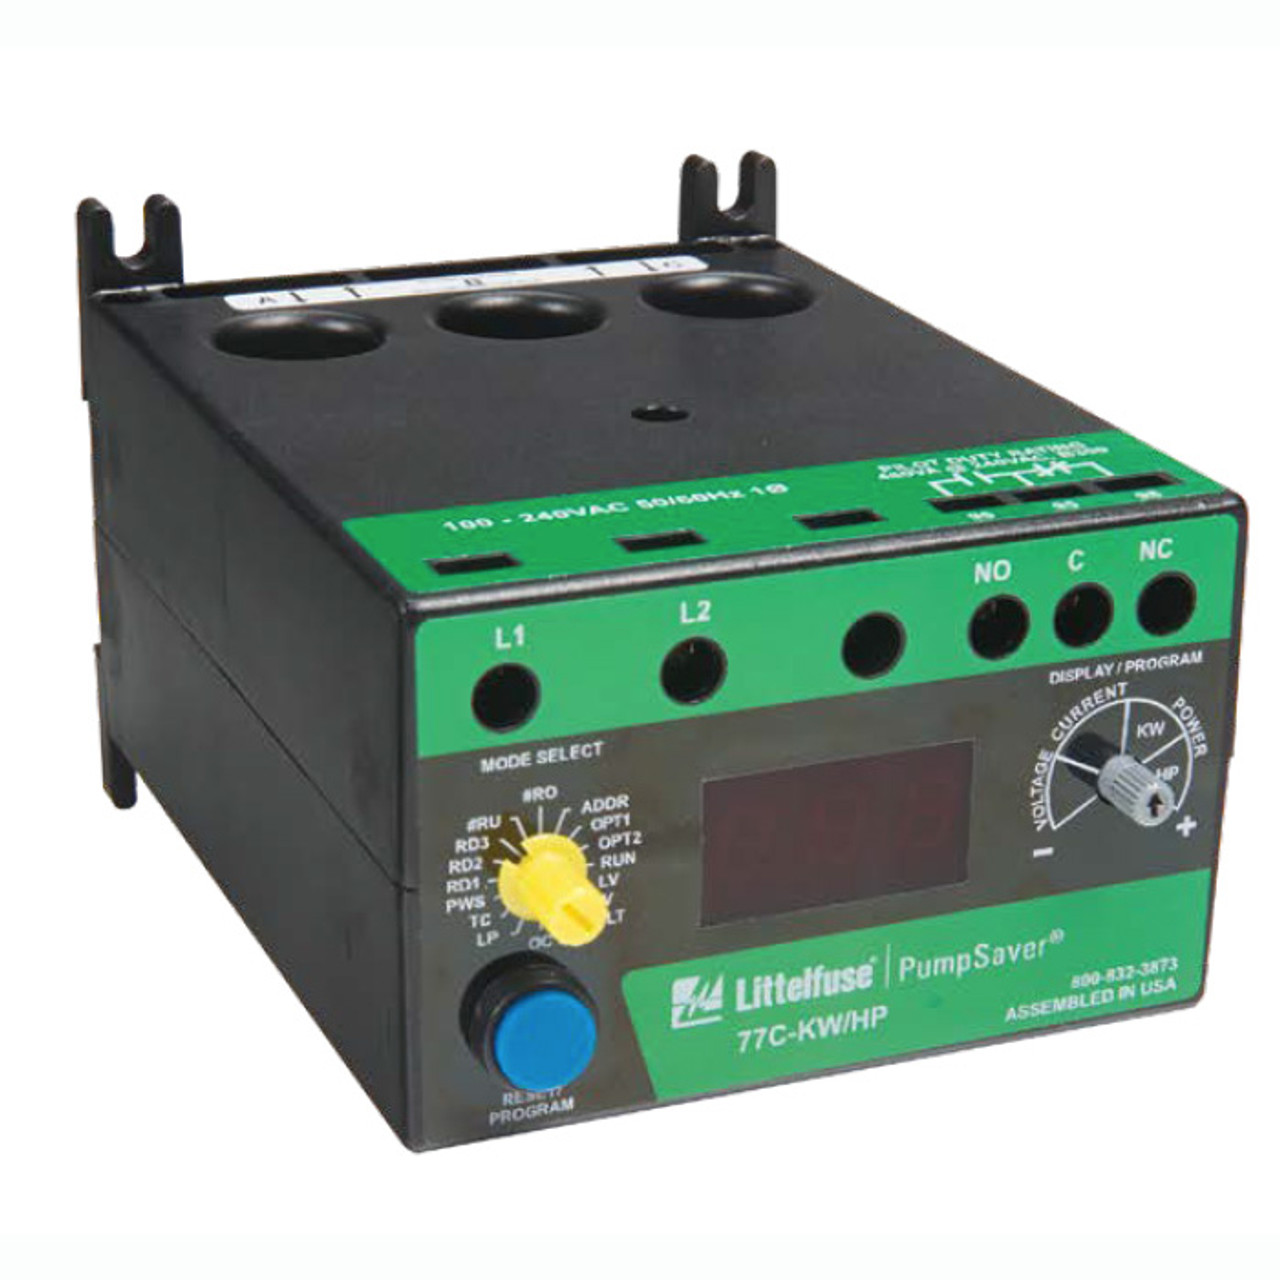 1-PHASE POWER MONITOR/ 100-240